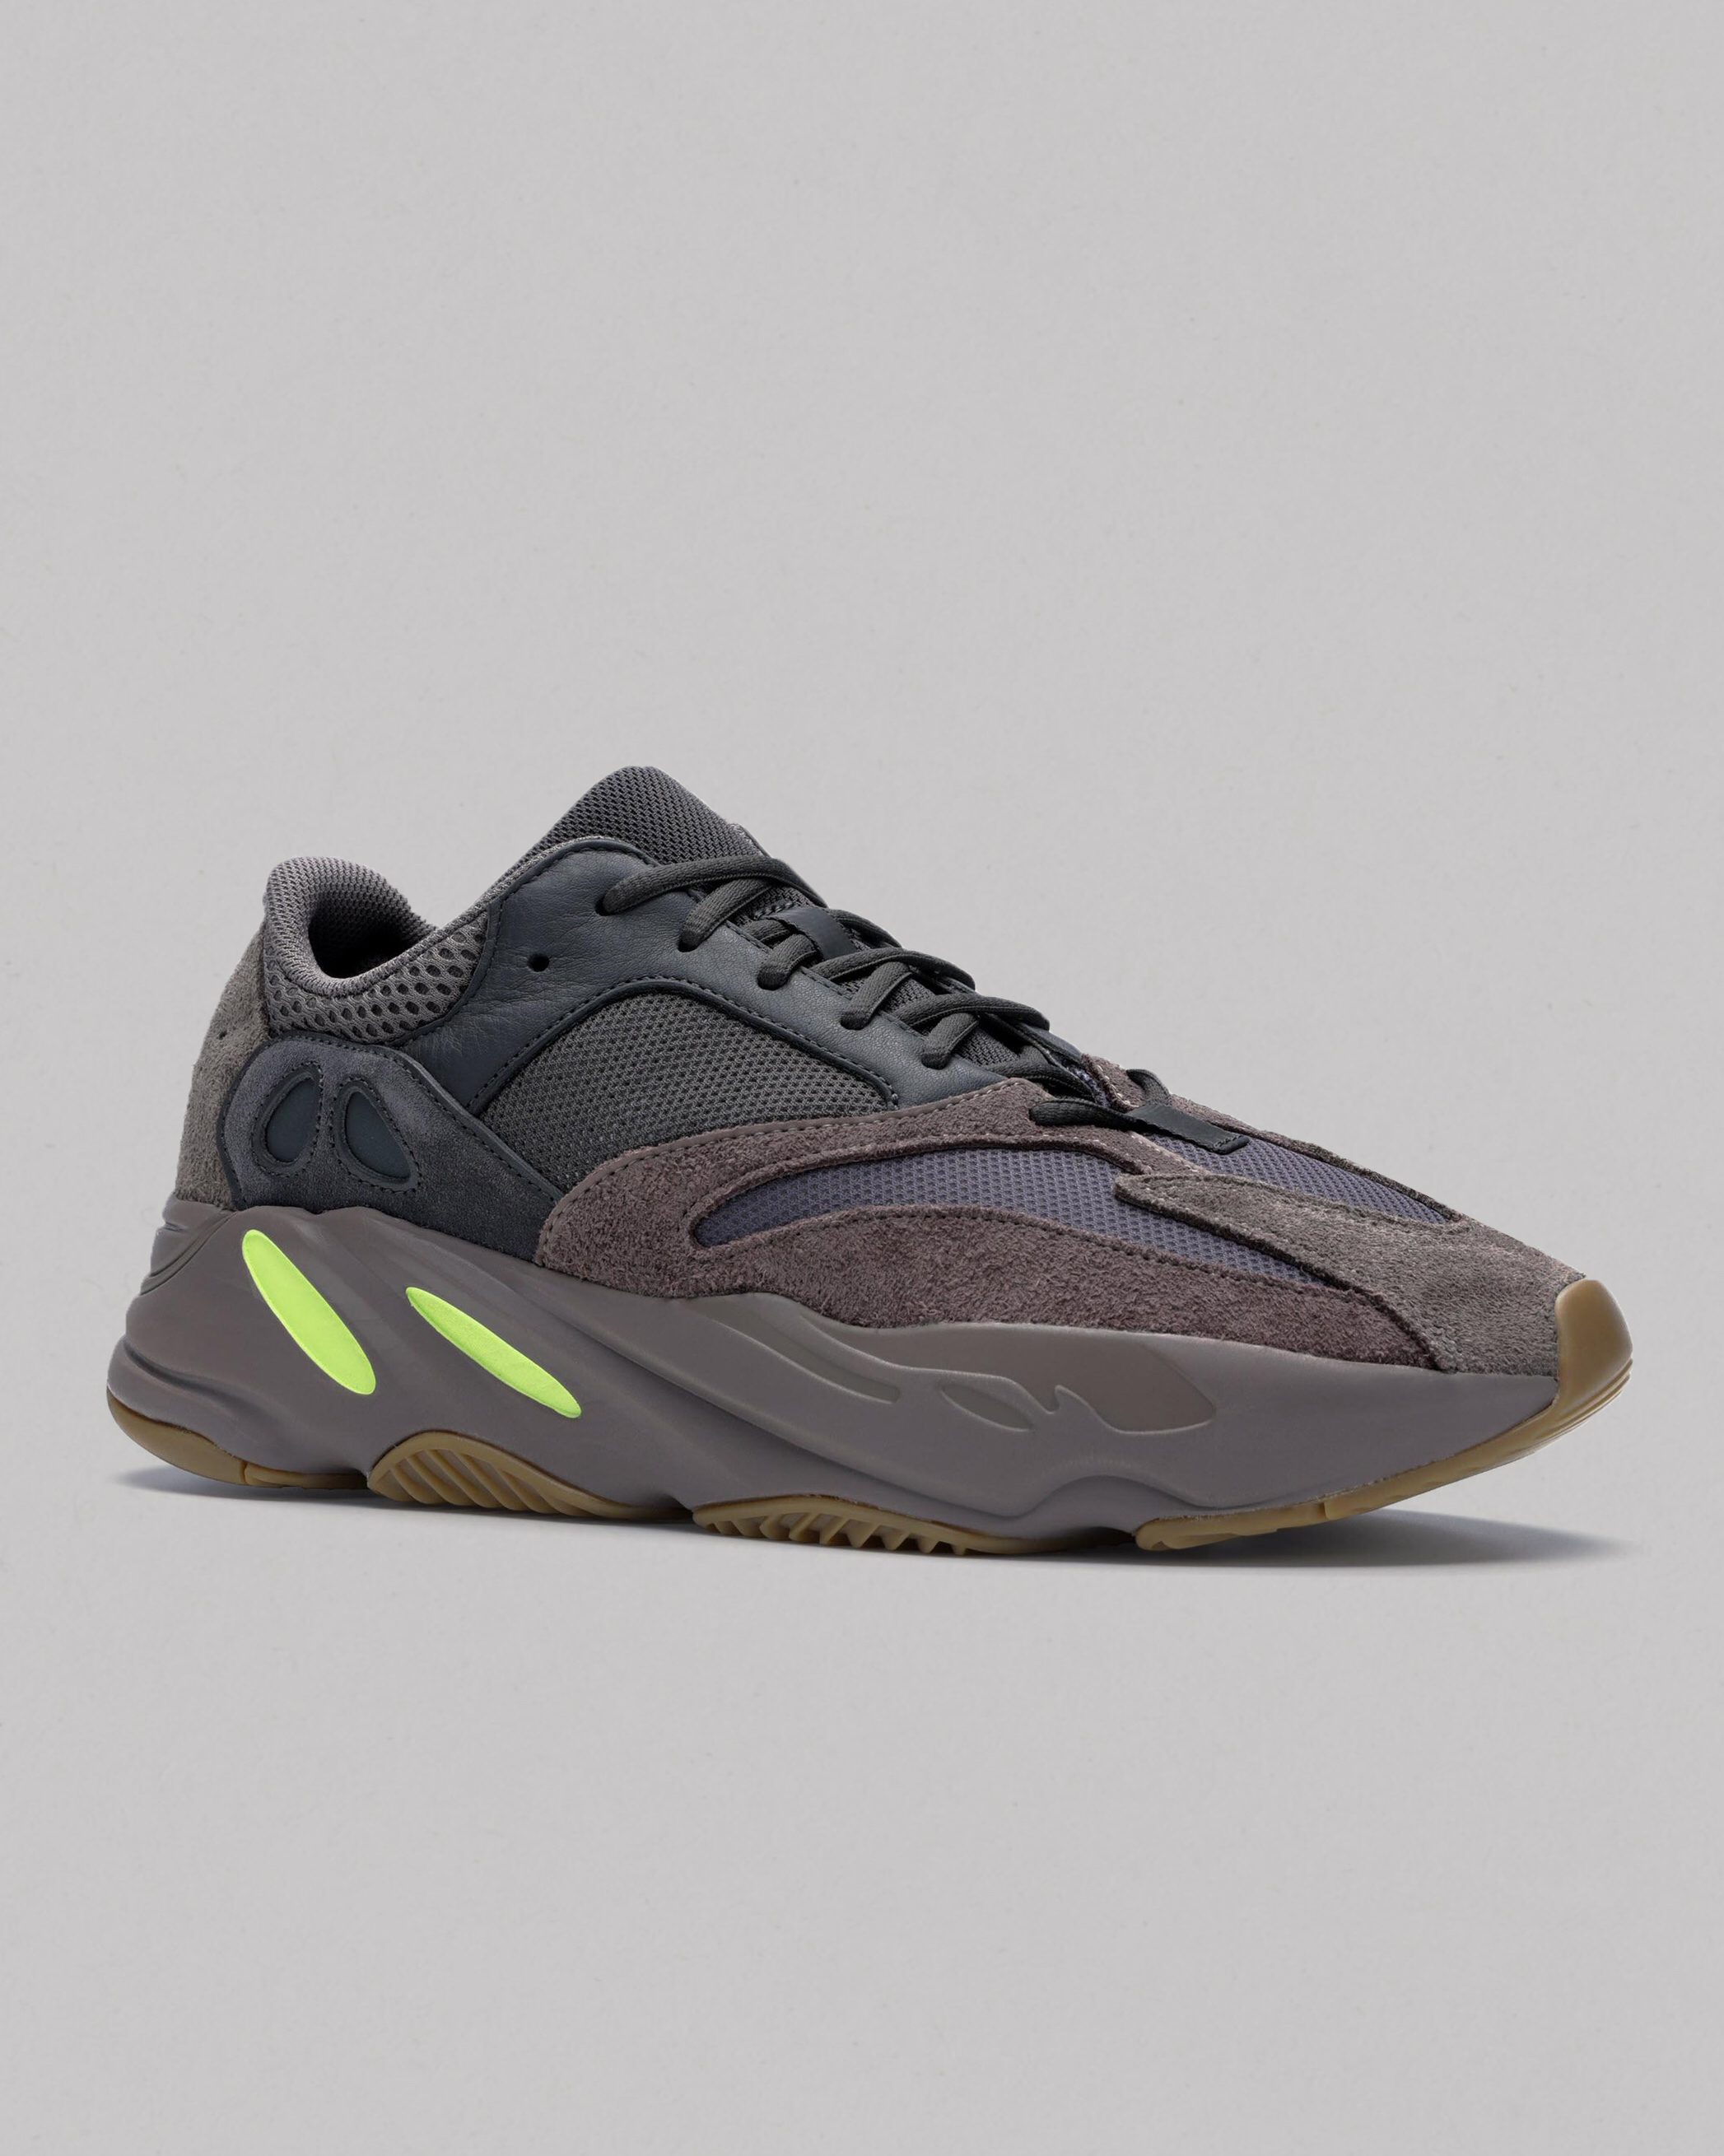 c06bbe555a191 Yeezy 700 Mauve - Analyzing Early Sales Data - StockX News